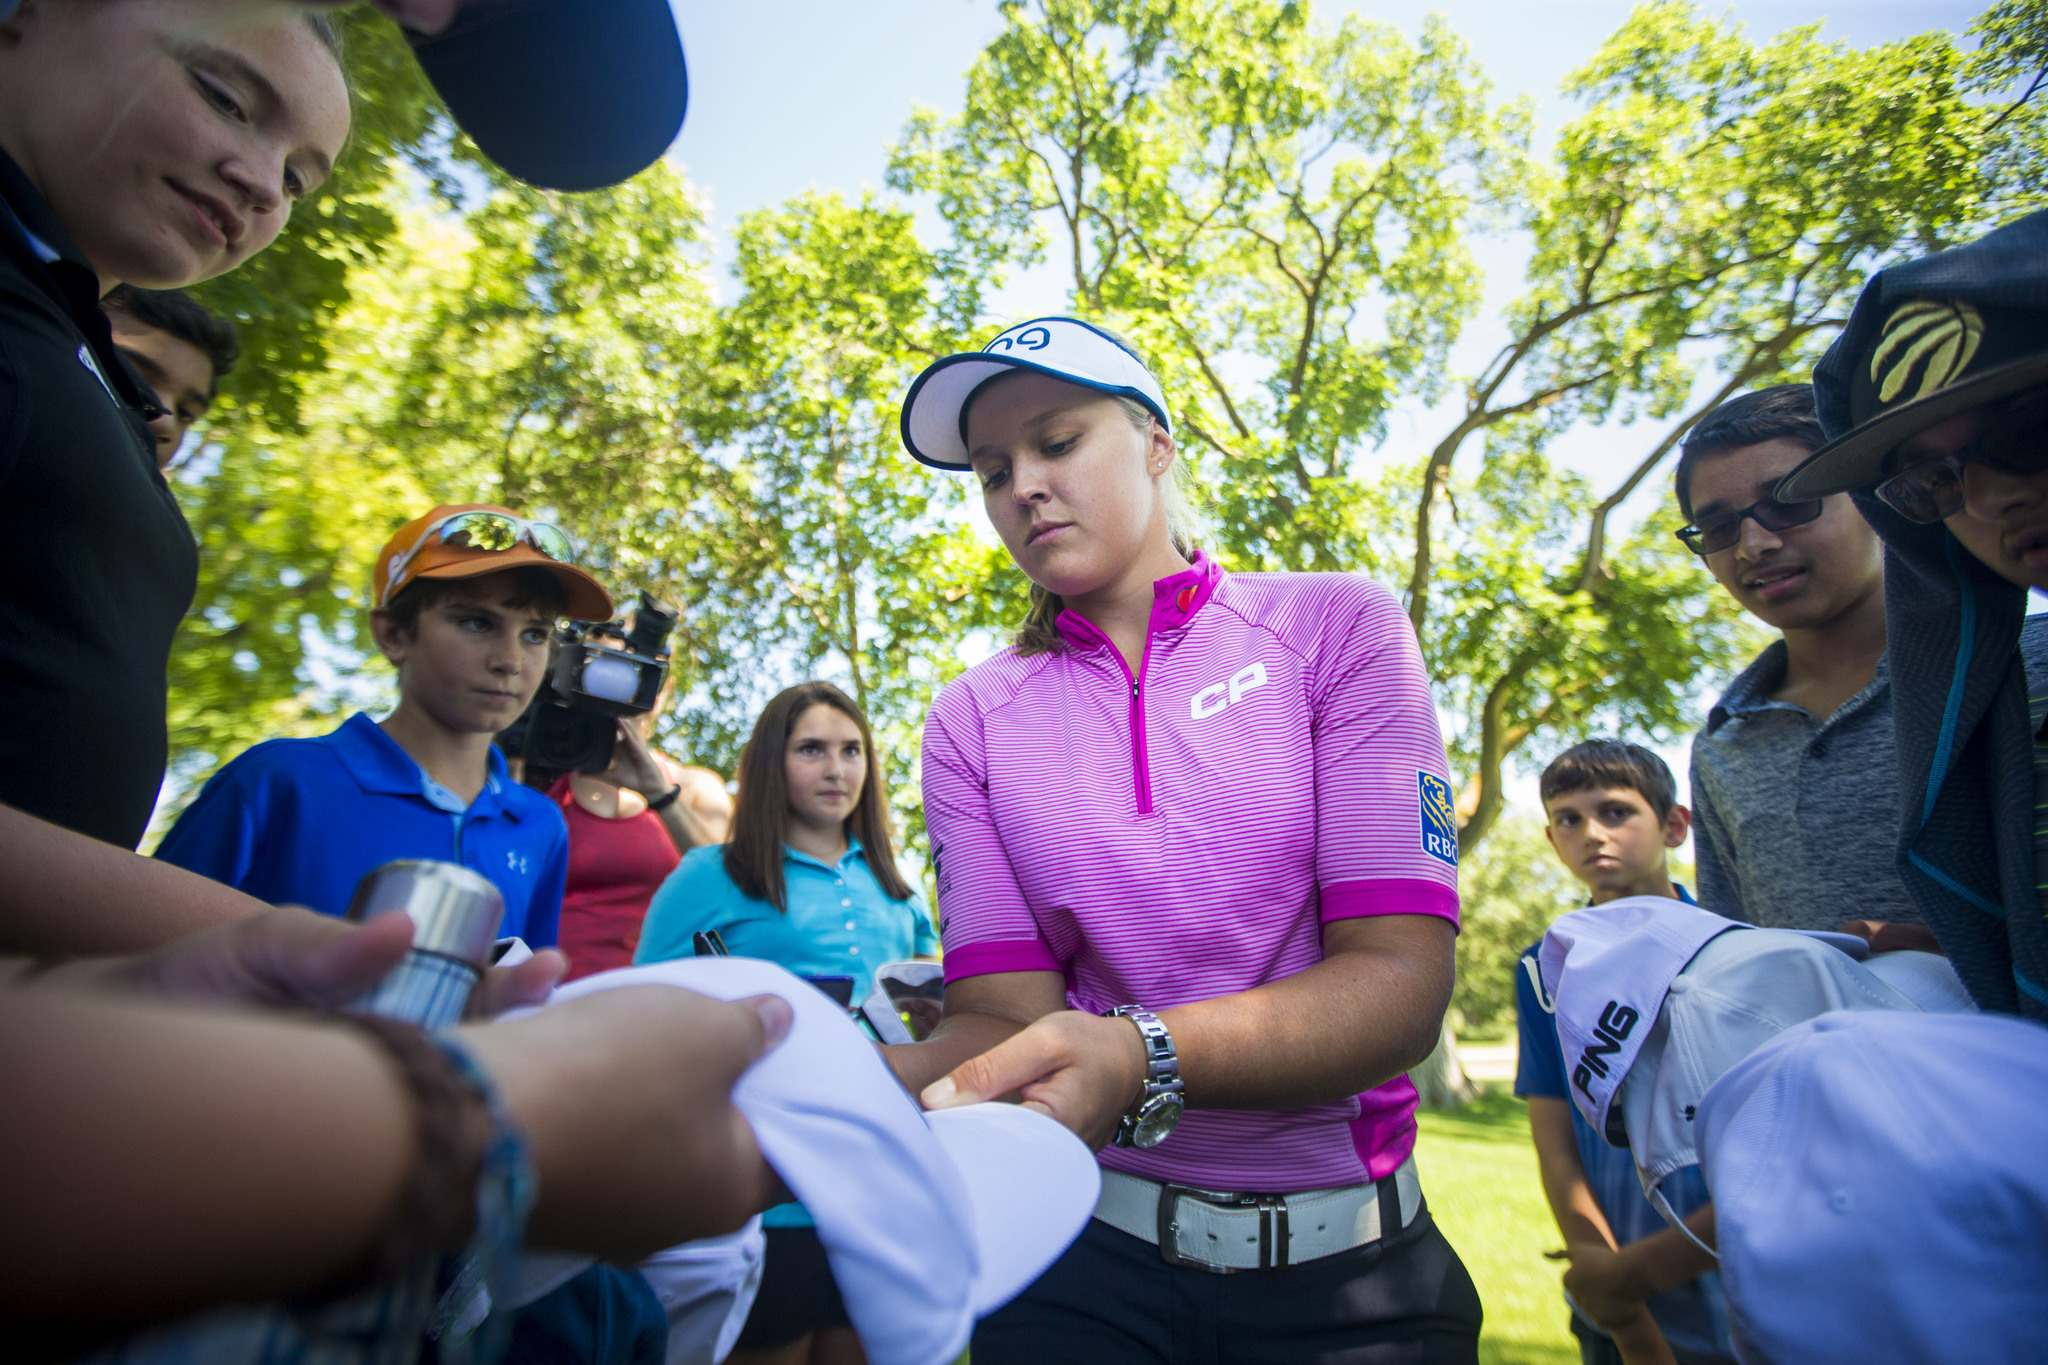 MIKAELA MACKENZIE / WINNIPEG FREE PRESS</p><p>Six-time LPGA tournament winner Brooke Henderson poses for pictures and signs autographs for kids in the Future Pros Program at the St. Charles Country Club in Winnipeg on Tuesday.</p>